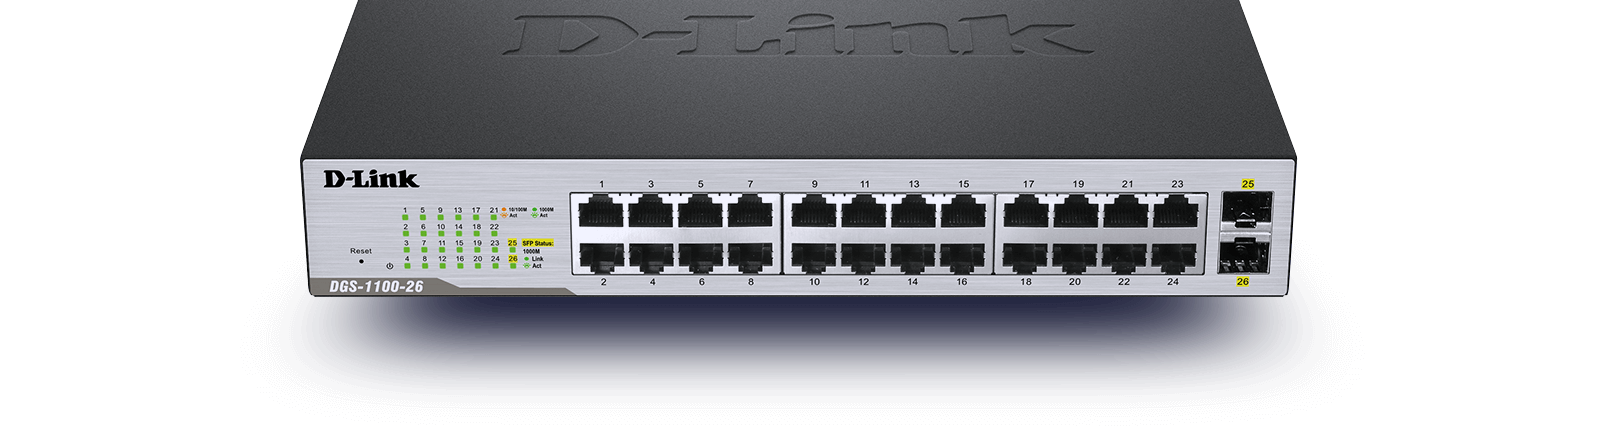 D-Link Assist for DGS-1100 Series Switches